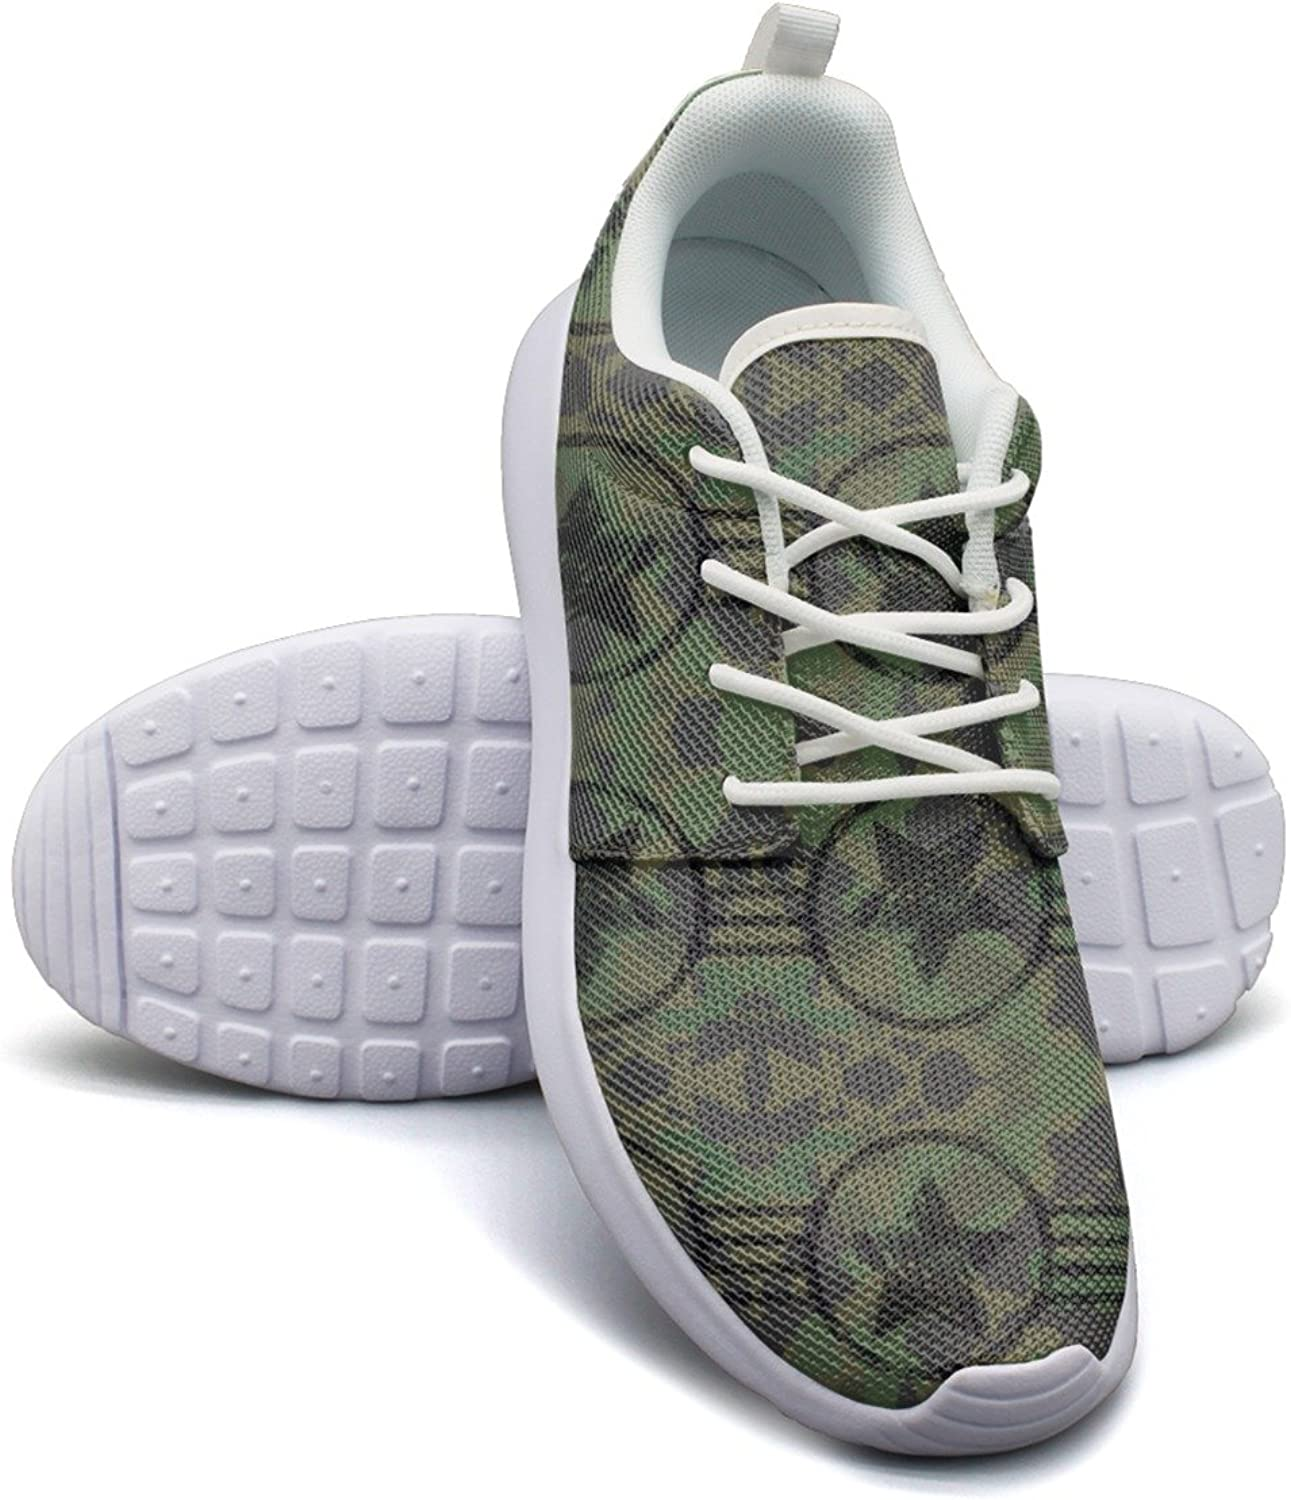 Military American Camouflage Flag Women's Lightweight Mesh Basketball Sneakers Hunting Running shoes